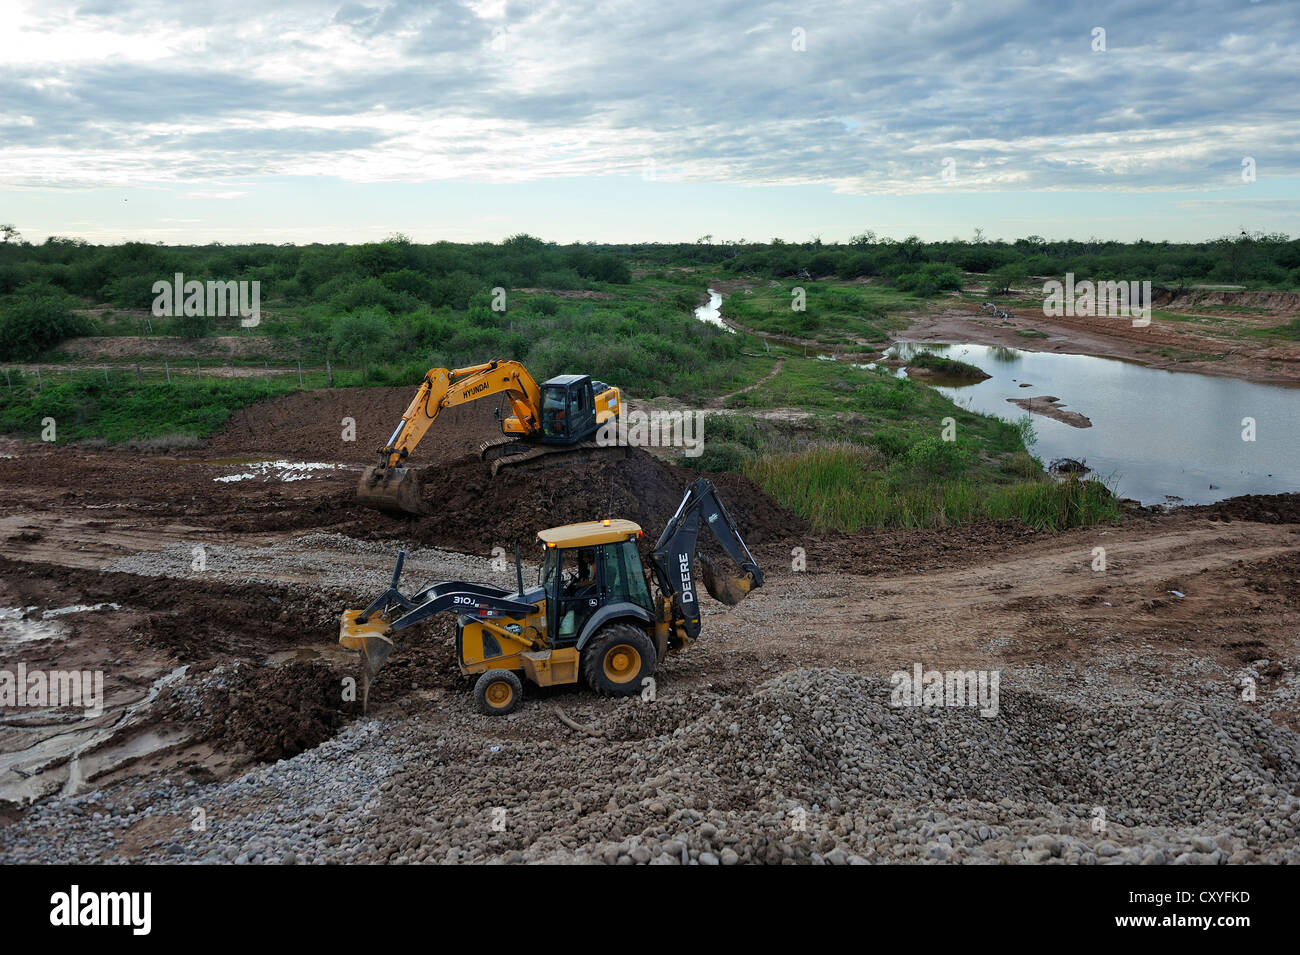 Construction works at a controversial road through the floodplains of the Pilcomayo River, a project supported by - Stock Image